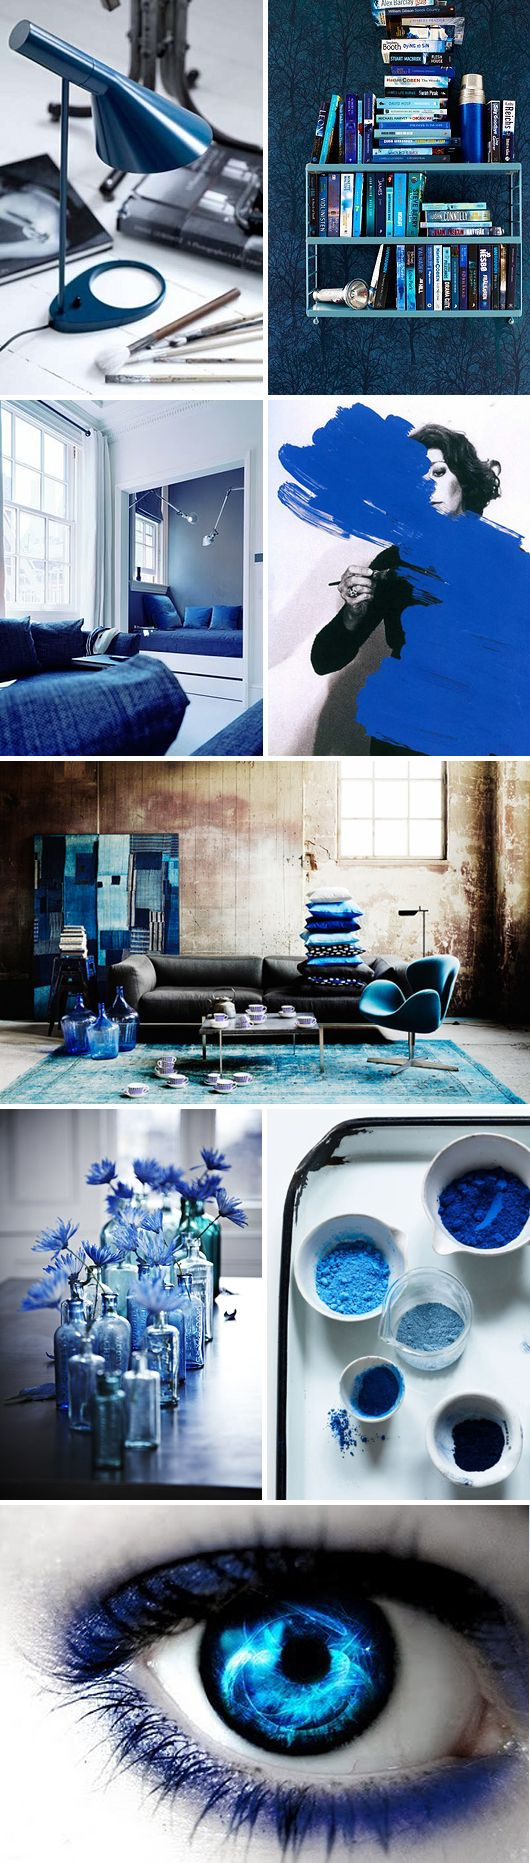 Blue mood board, inspiring in interior design. See more inspirations at http://www.brabbu.com/en/inspiration-and-ideas/ #MoodBoardIdeas #MoodBoardDesign #MoodBoardFashion